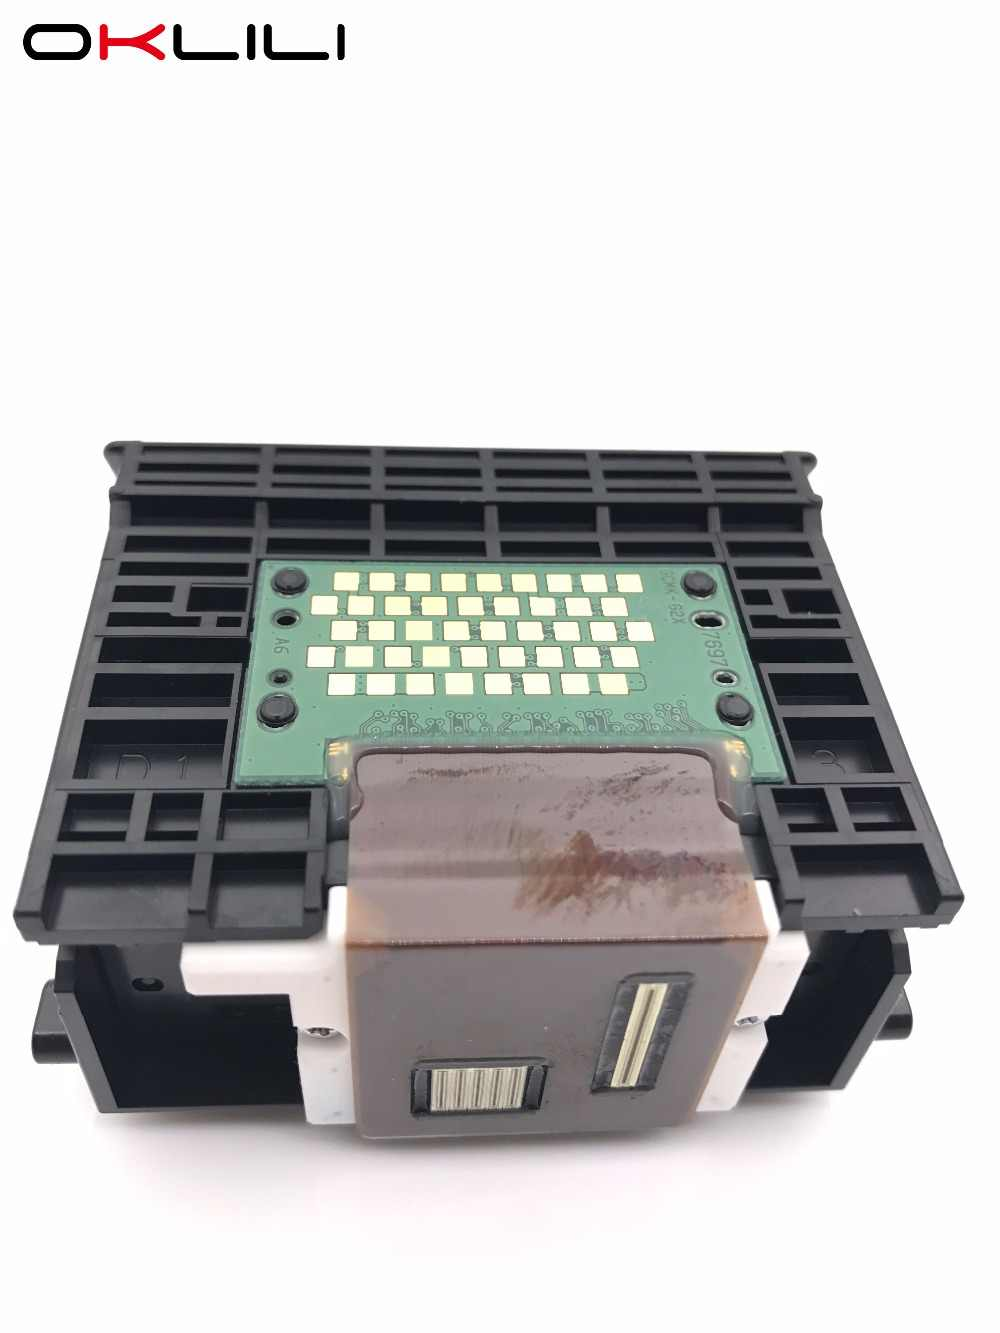 OKLILI QY6-0070-000 ASLI QY6-0070 Printhead Print Head Printer Kepala untuk Canon MP510 MP520 MX700 iP3300 iP3500